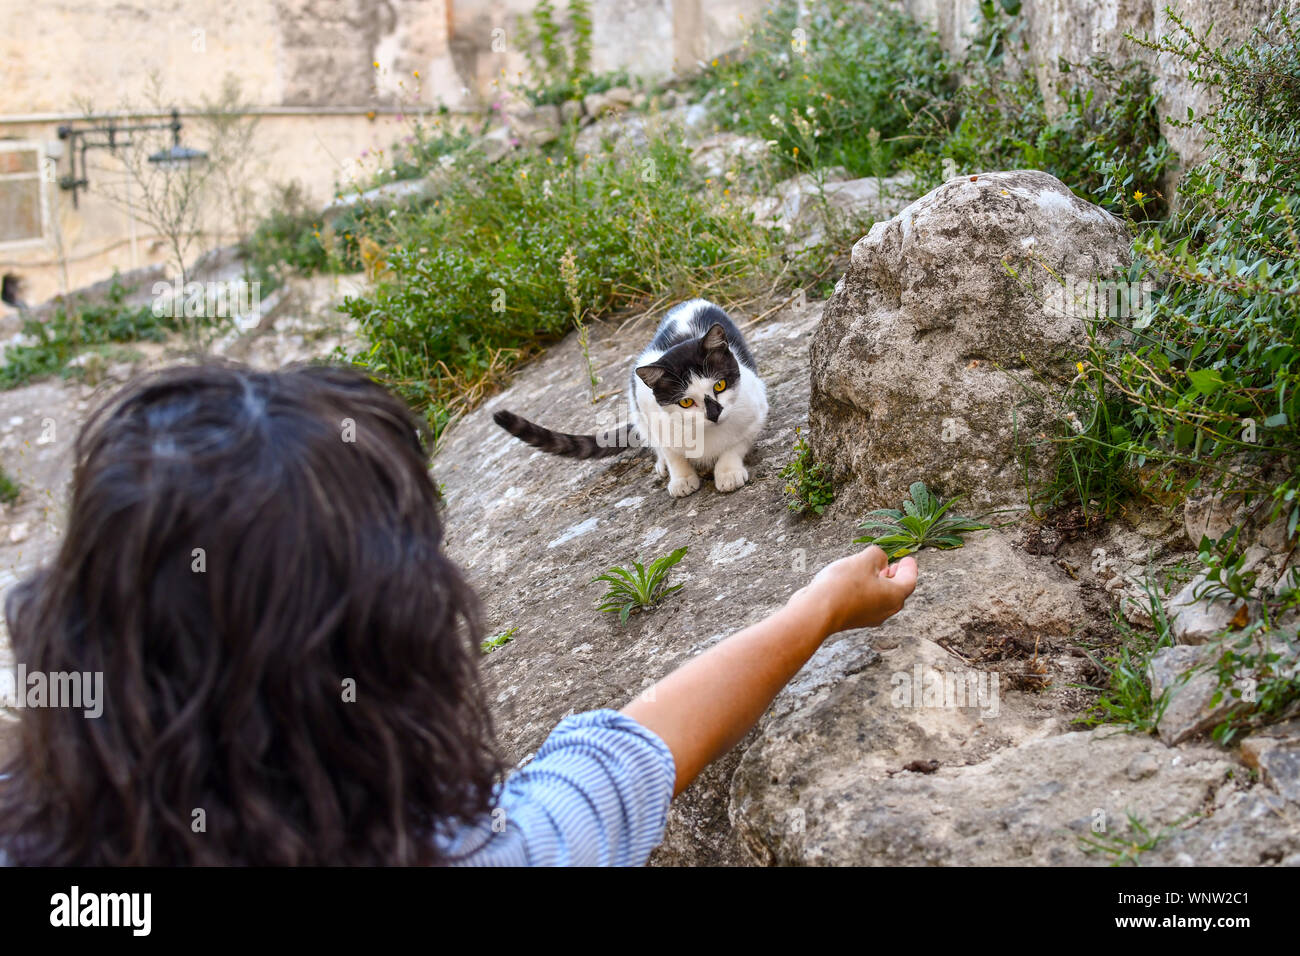 A woman coaxes a black and white stray cat with dry food in her hand in the medieval city of Matera, Italy Stock Photo